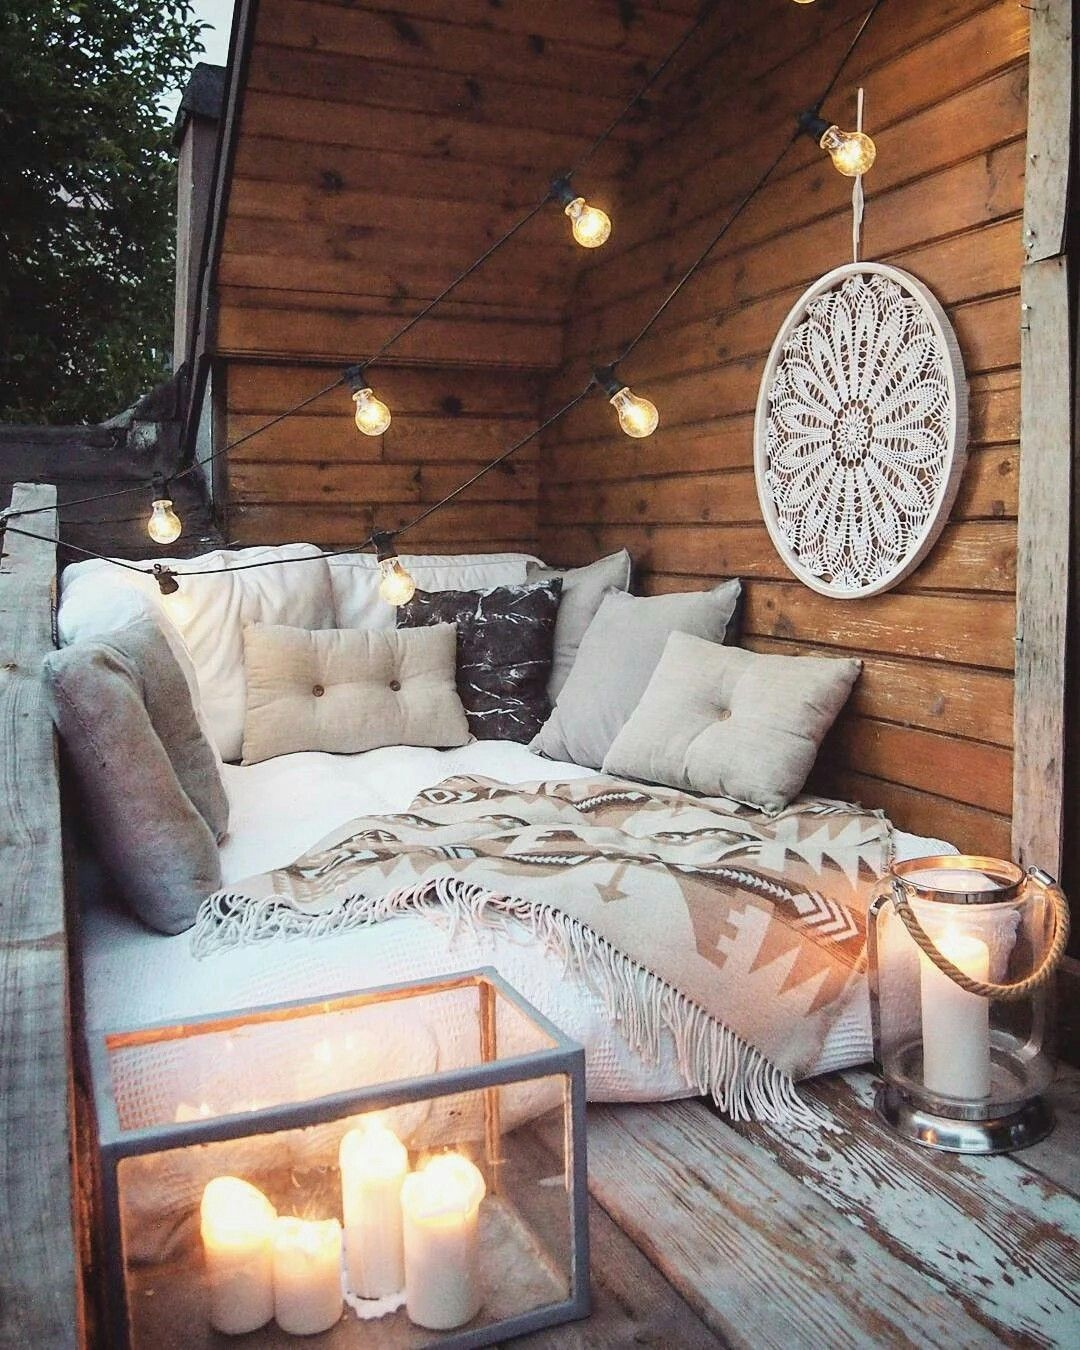 Pin by Cherylle Folks on HOME SWEET HOME  Decorating small spaces